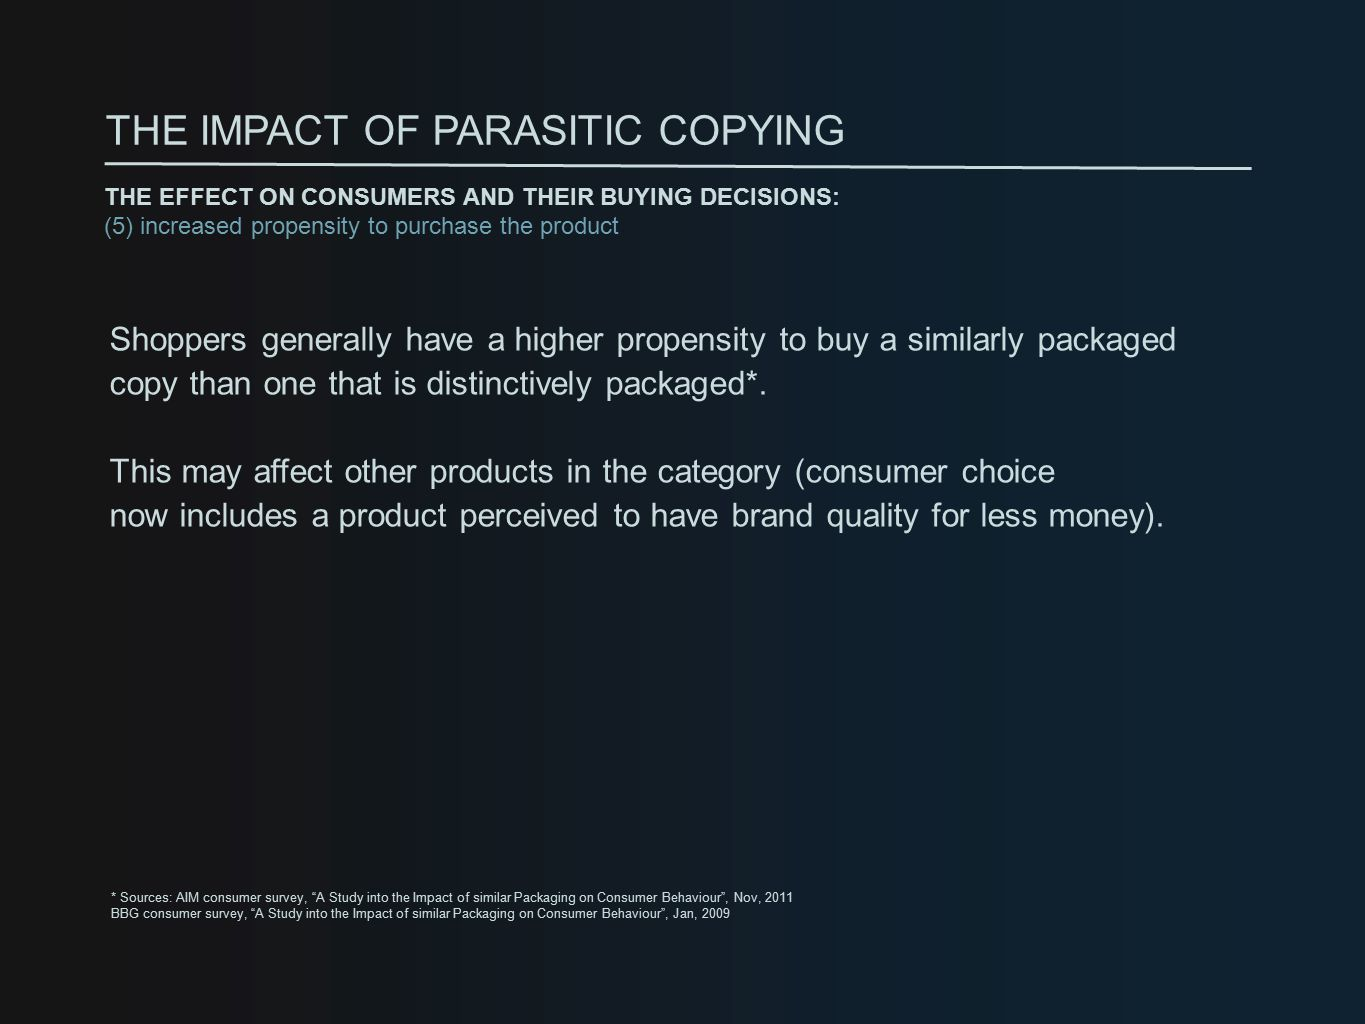 Shoppers generally have a higher propensity to buy a similarly packaged copy than one that is distinctively packaged*.